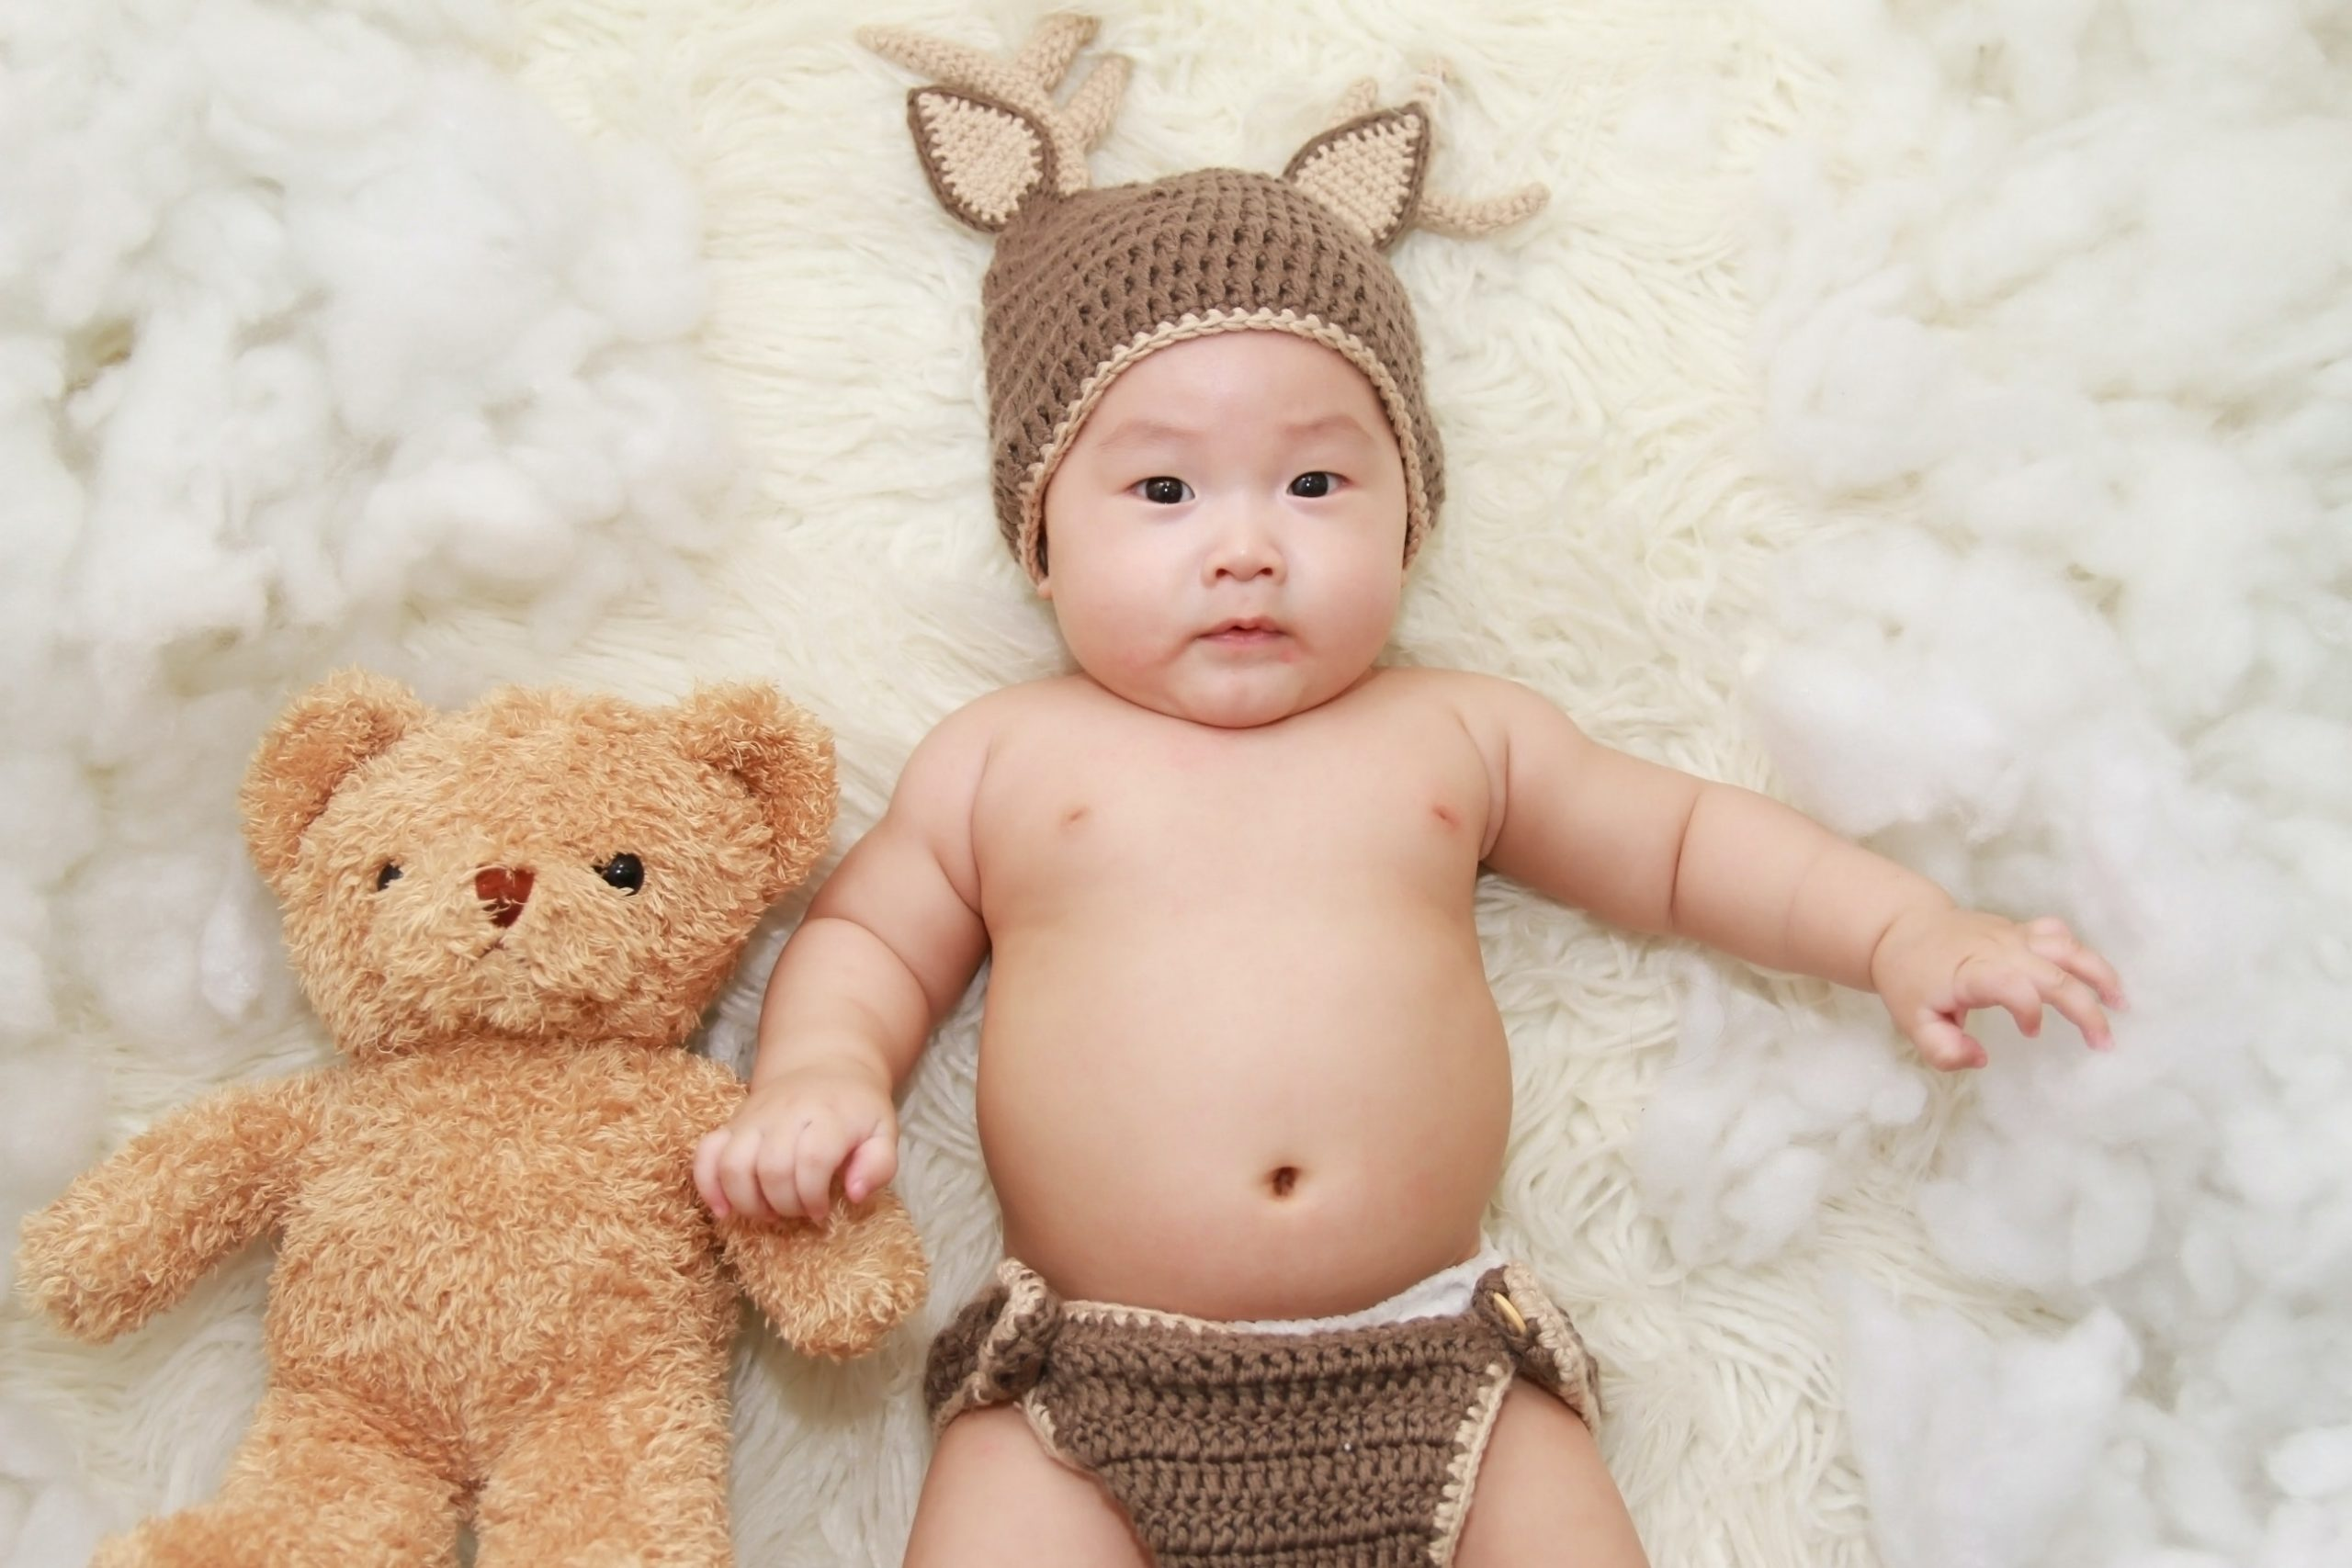 adorable-baby-beanie-bonnet-421879